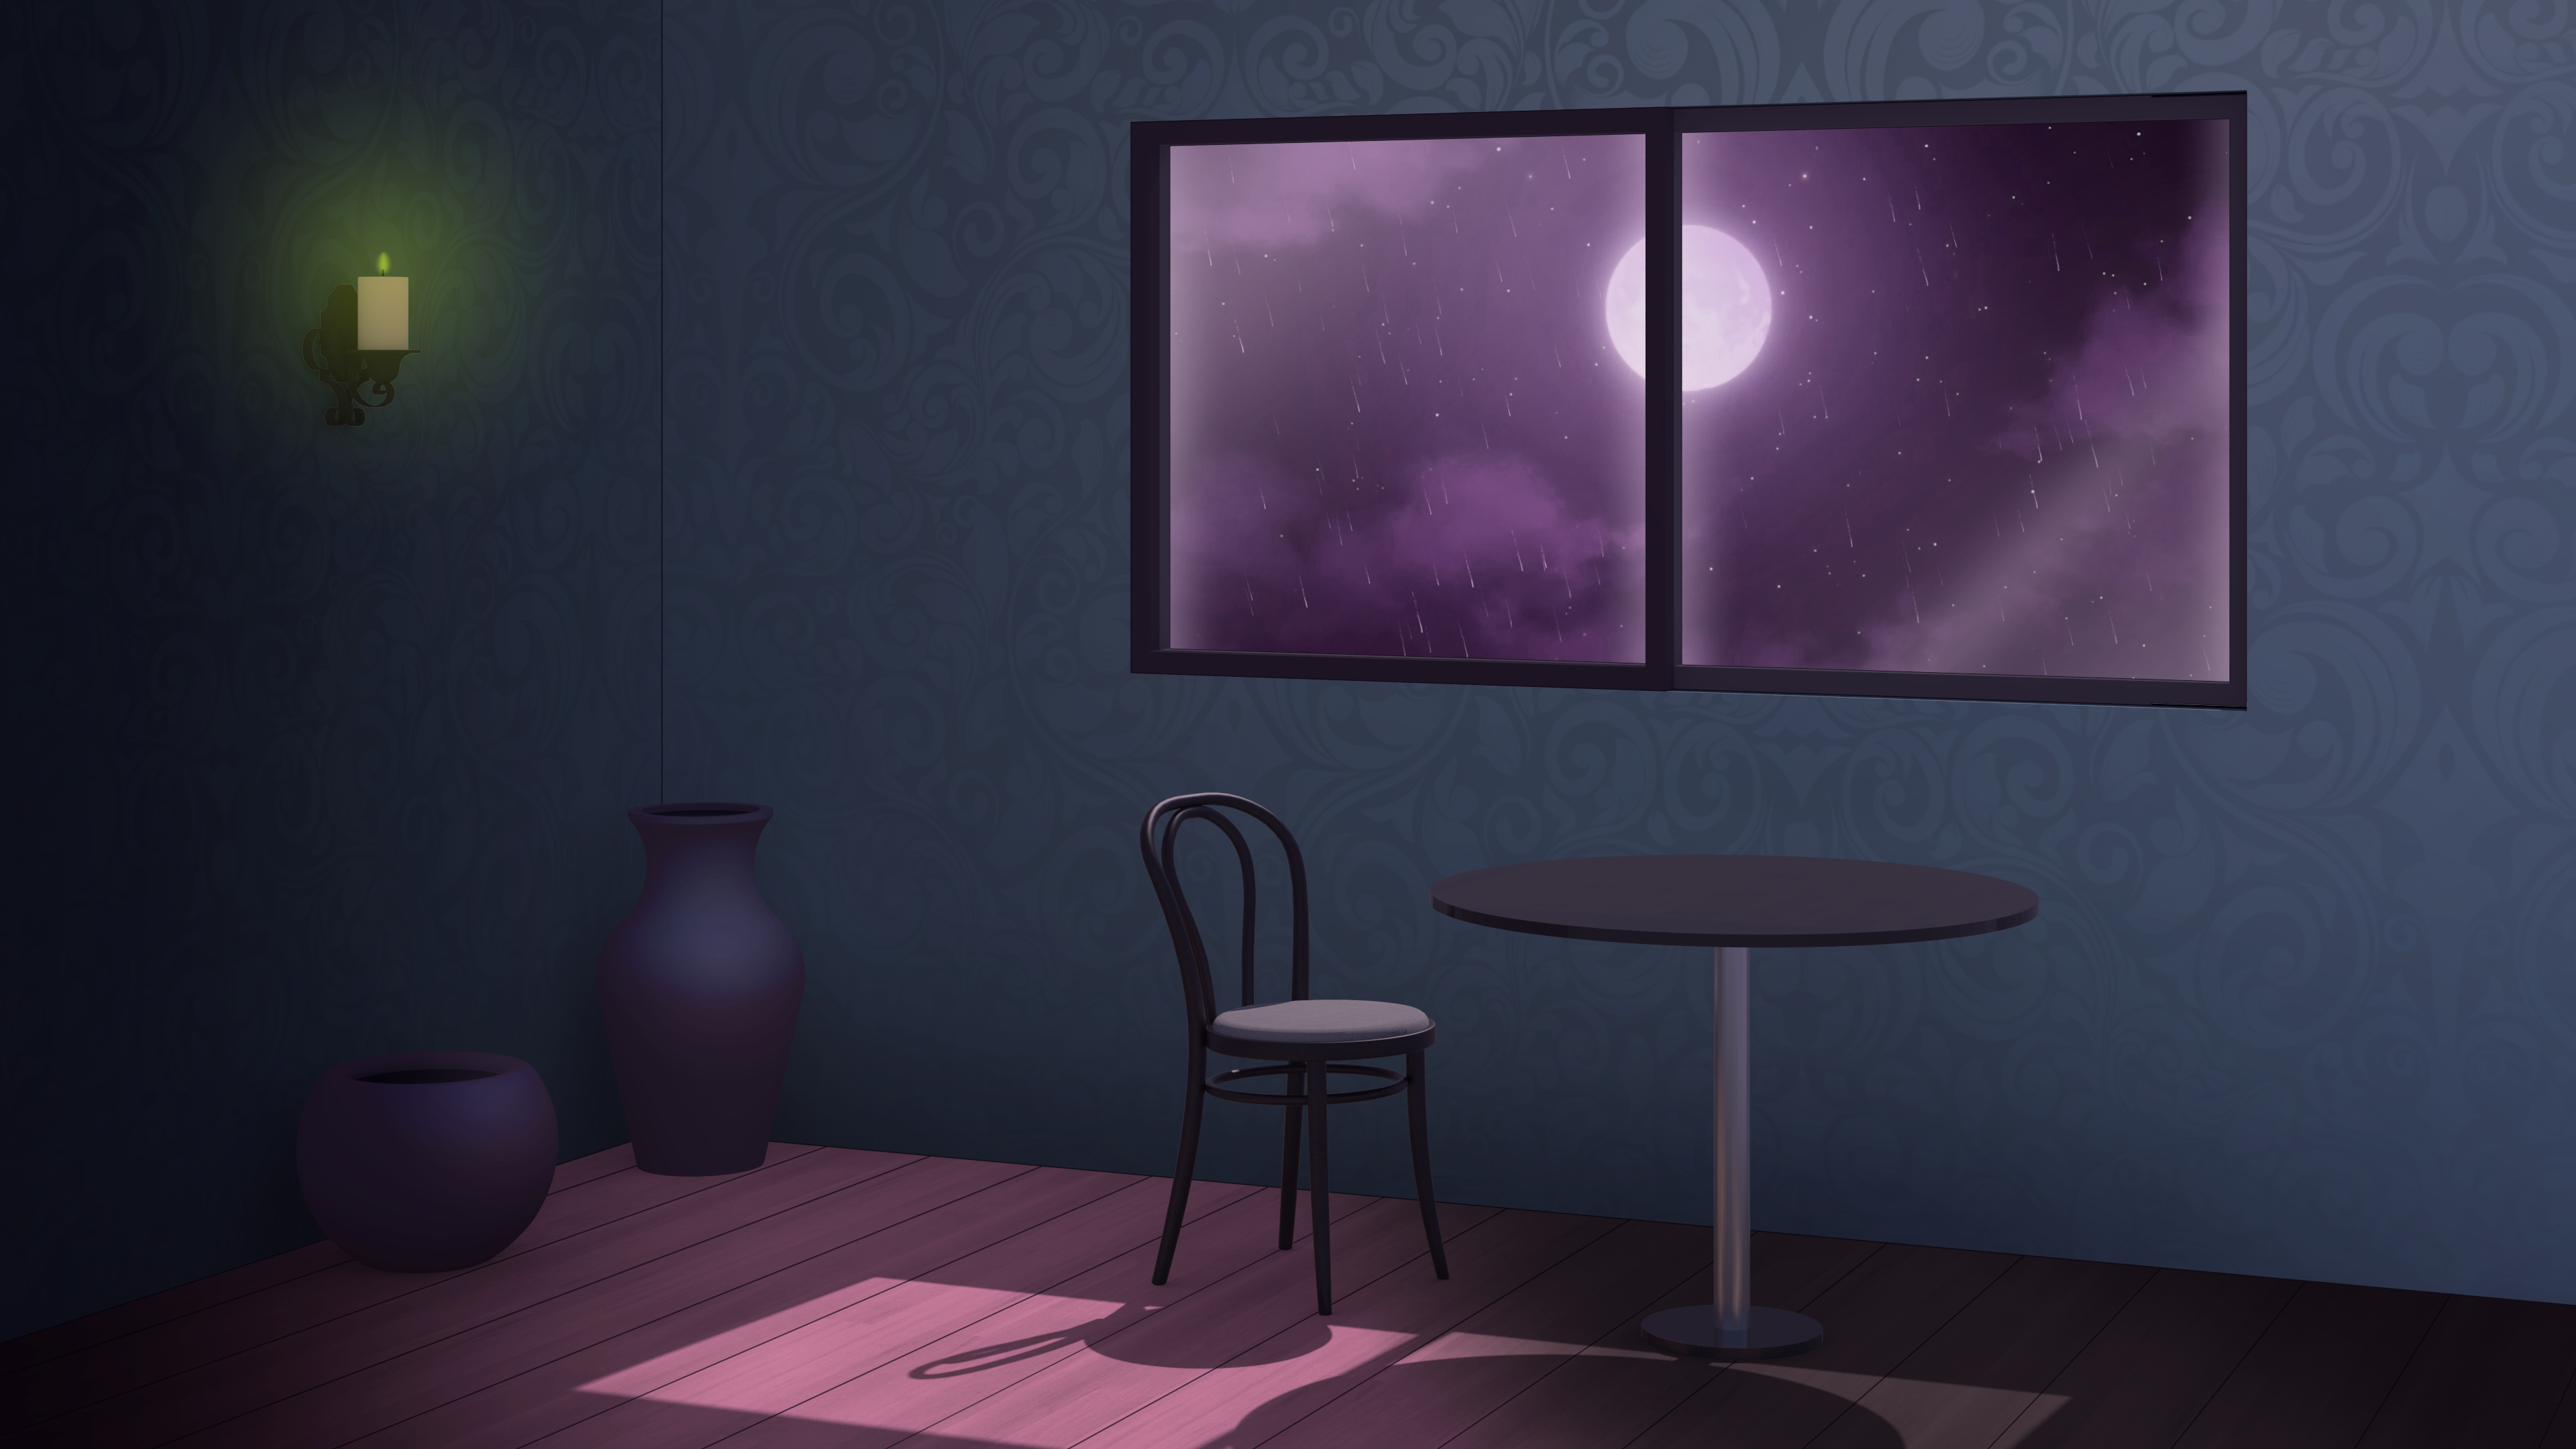 The Room At End Of The Tower Anime Visual Novel Background Animesketch